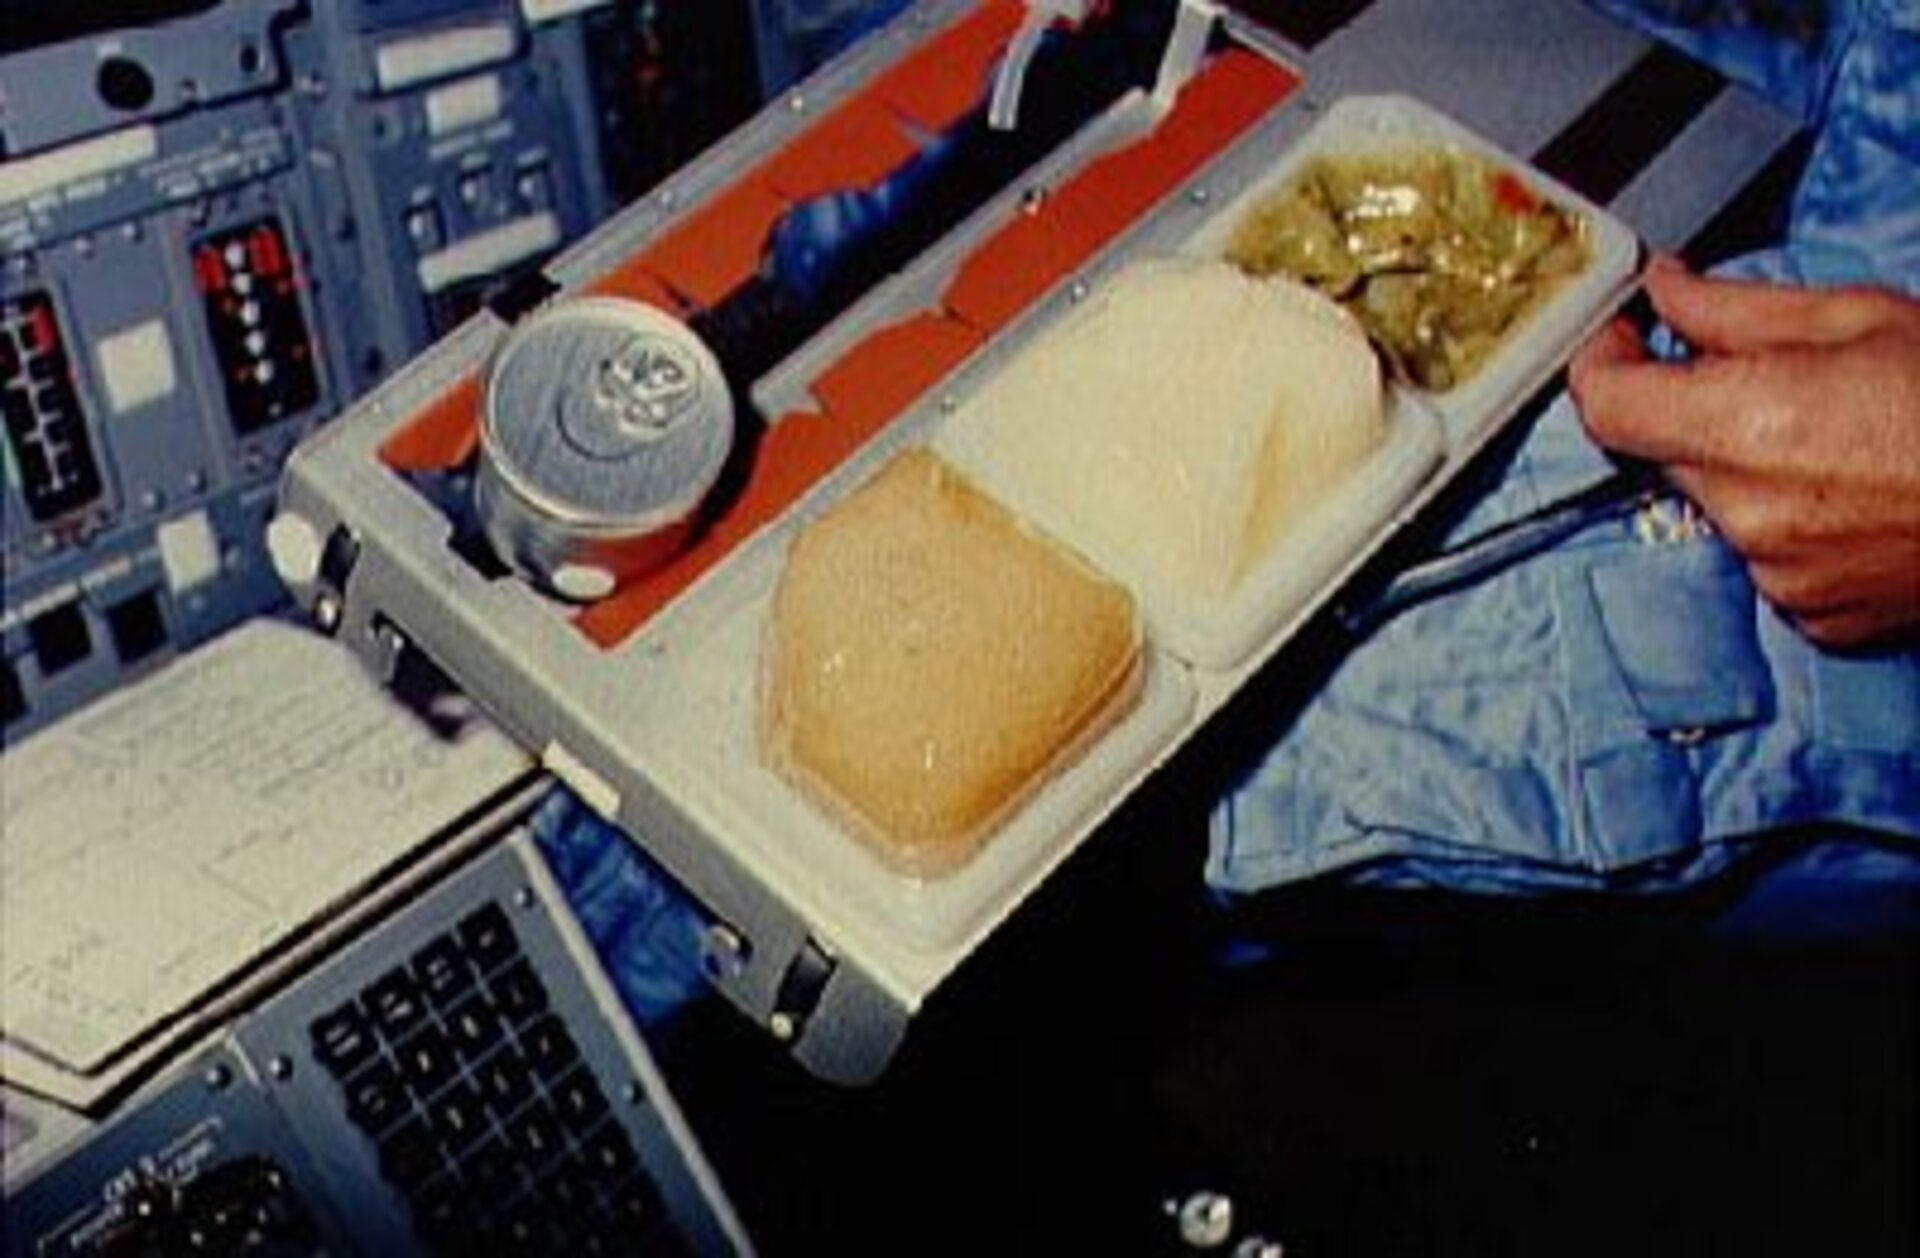 Determination of food and water requirements of astronauts during spaceflight is important